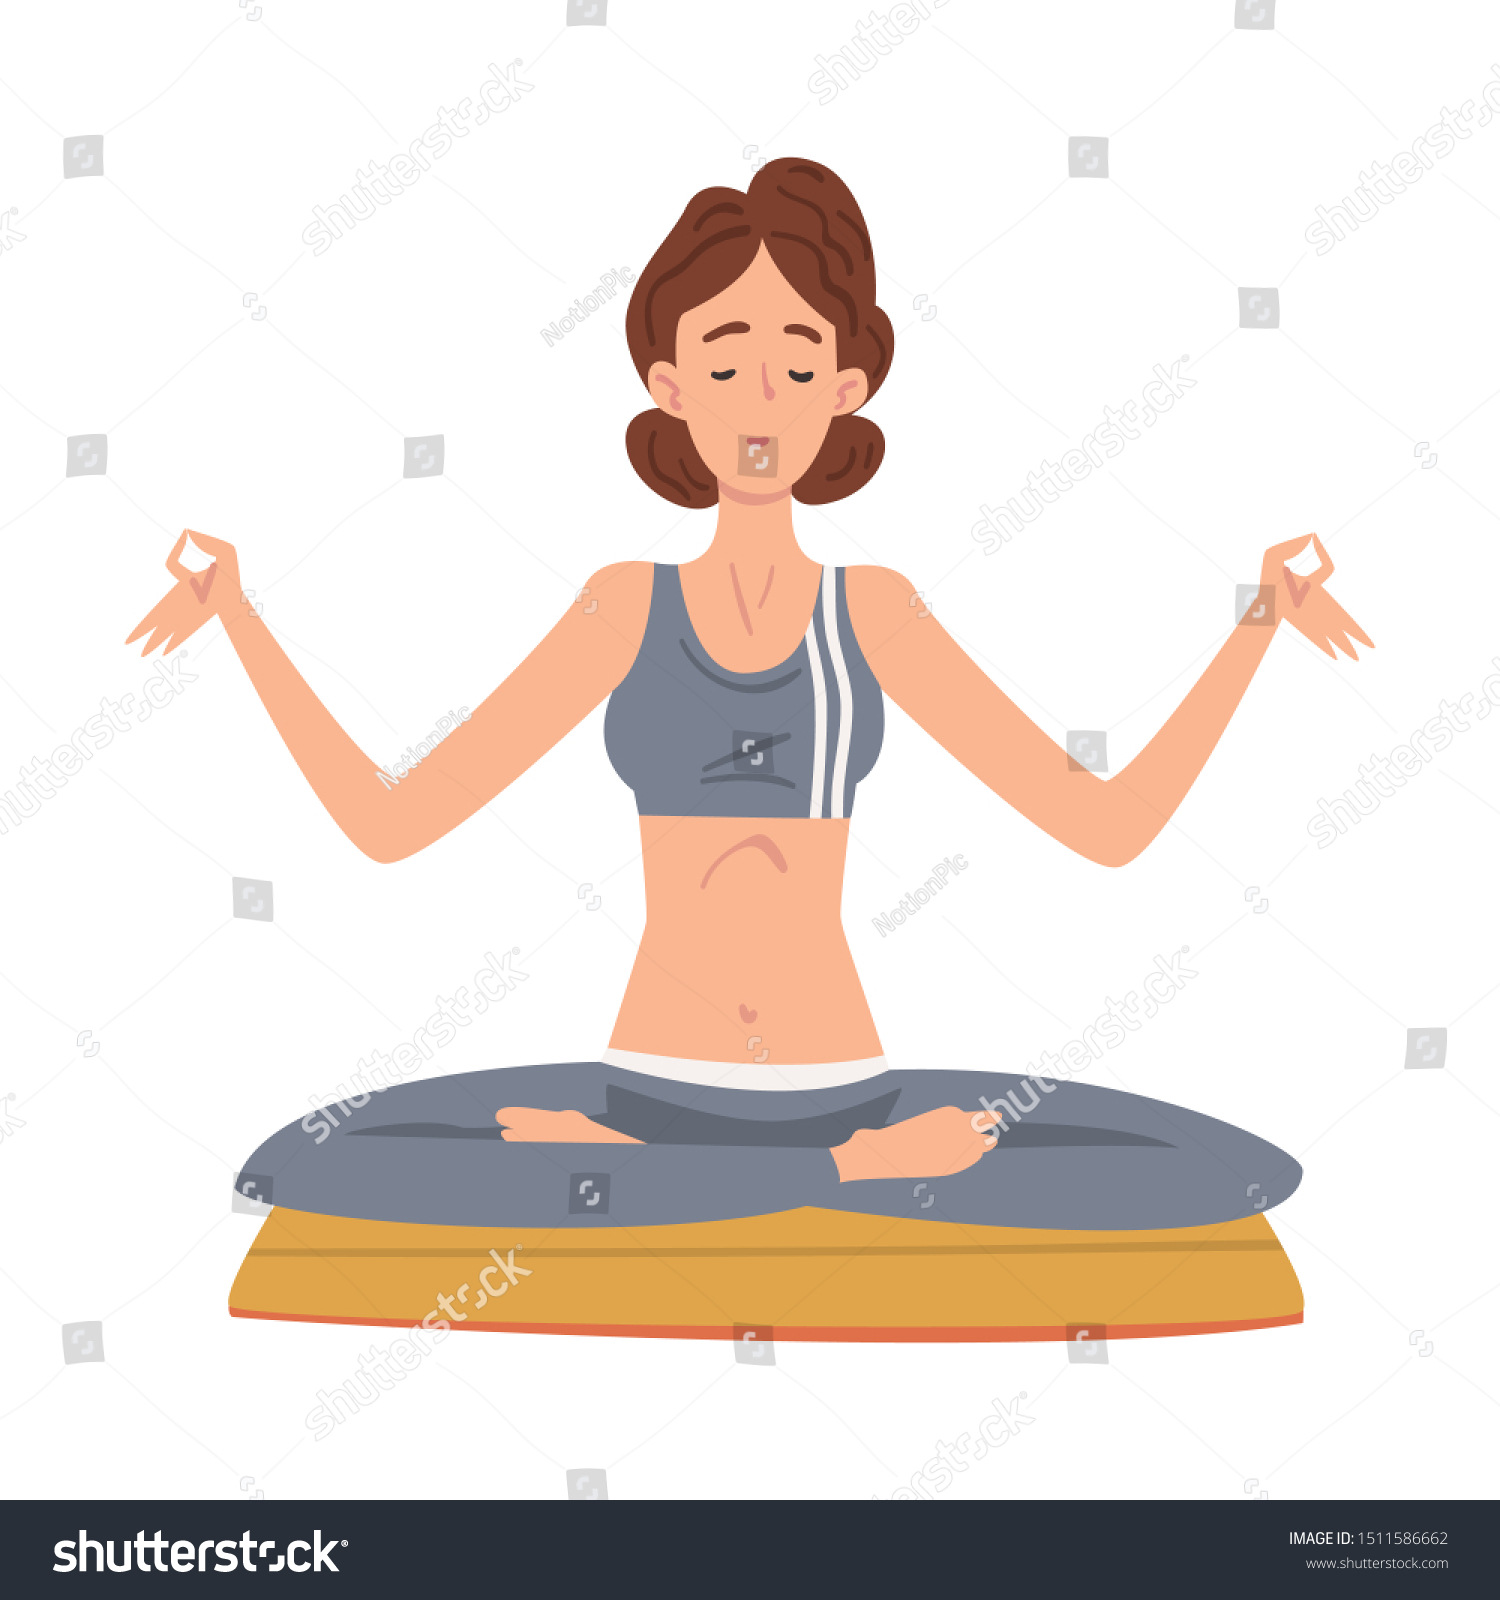 Girl Sitting Meditating Yoga Lotus Position Stock Vector Royalty Free 1511586662